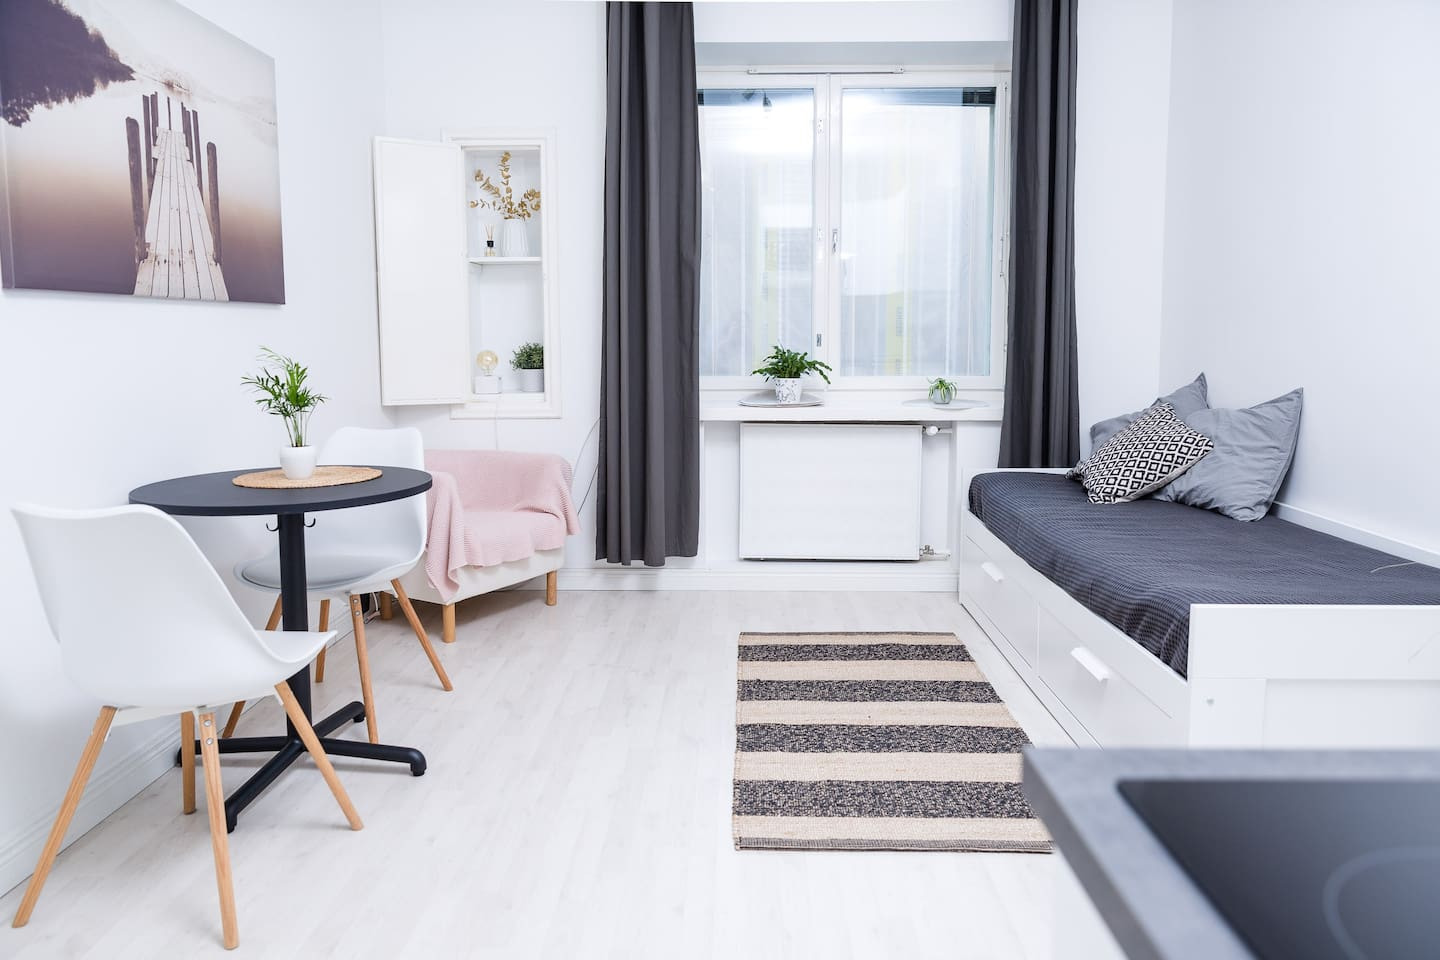 A stylish and clean studio room for max. 3 people. A sofa-bed (160x200cm) fits two persons and we also have one airmatress in the closet that fits one person.